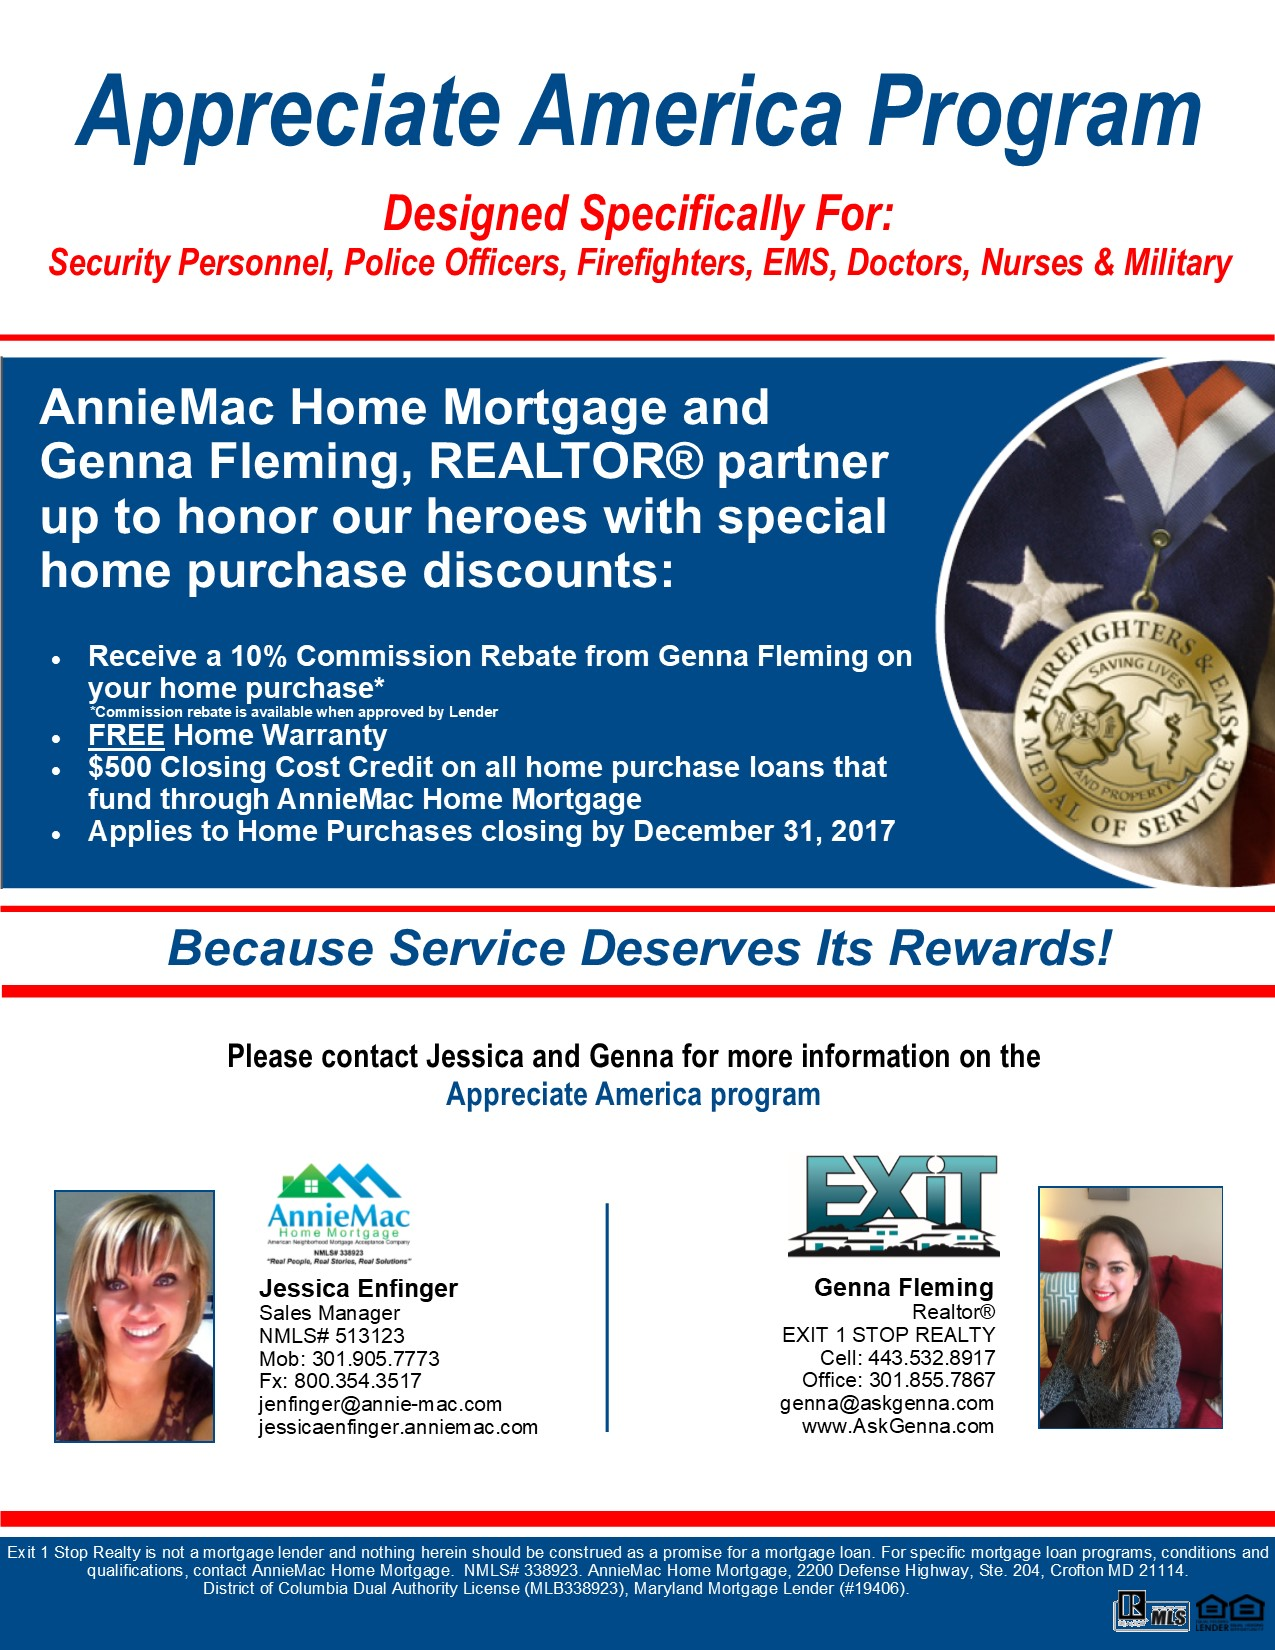 Appreciate America Program from Genna Fleming, Realtor